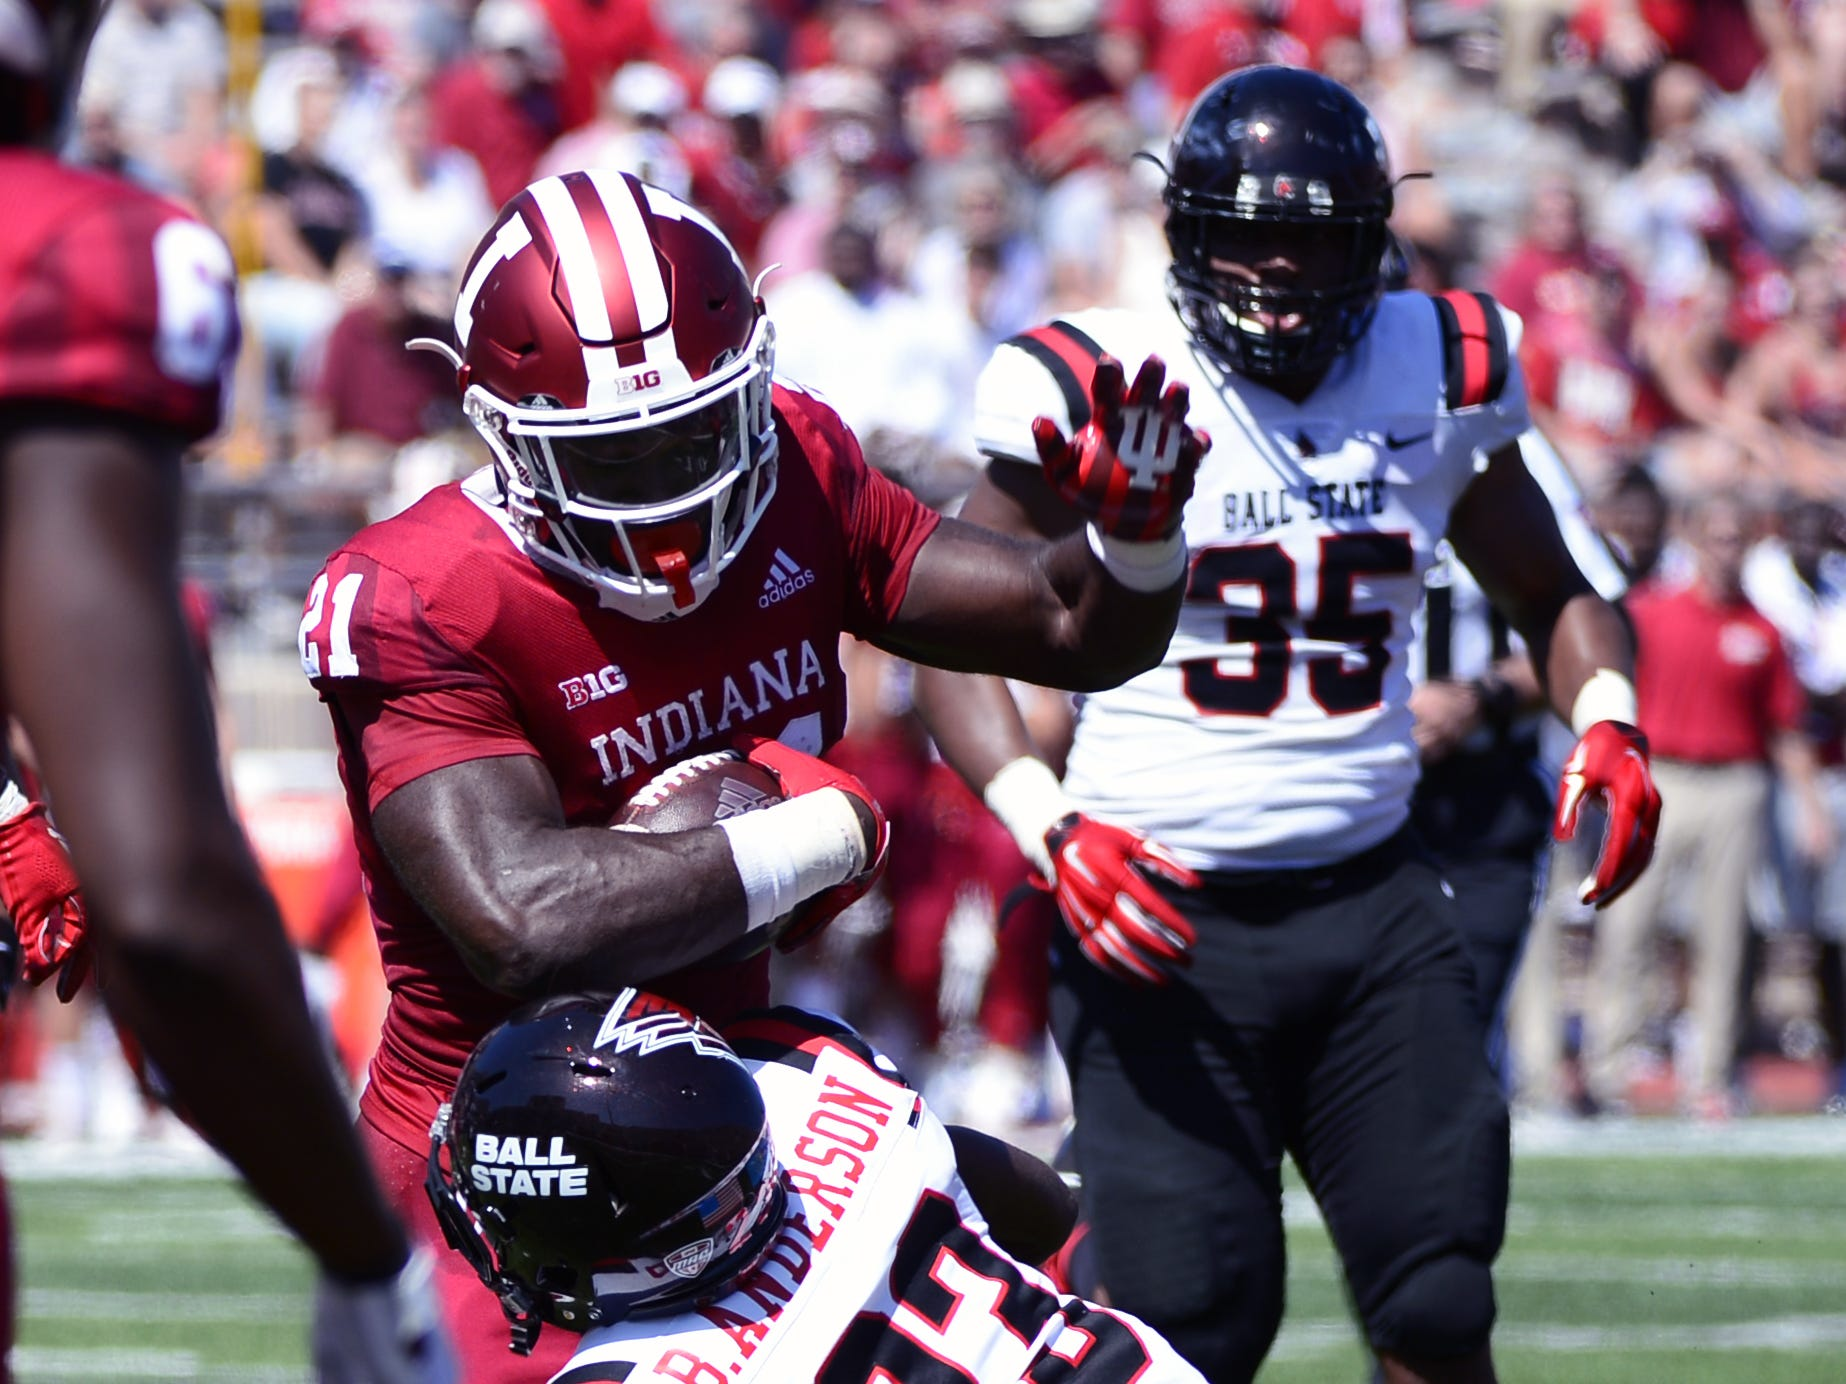 Indiana Hoosiers running back Stevie Scott (21) is tackled by Ball State safety Brett Anderson II (23) during the game against Ball State at Memorial Stadium in Bloomington, Ind., on Saturday, Sept. 15, 2018.